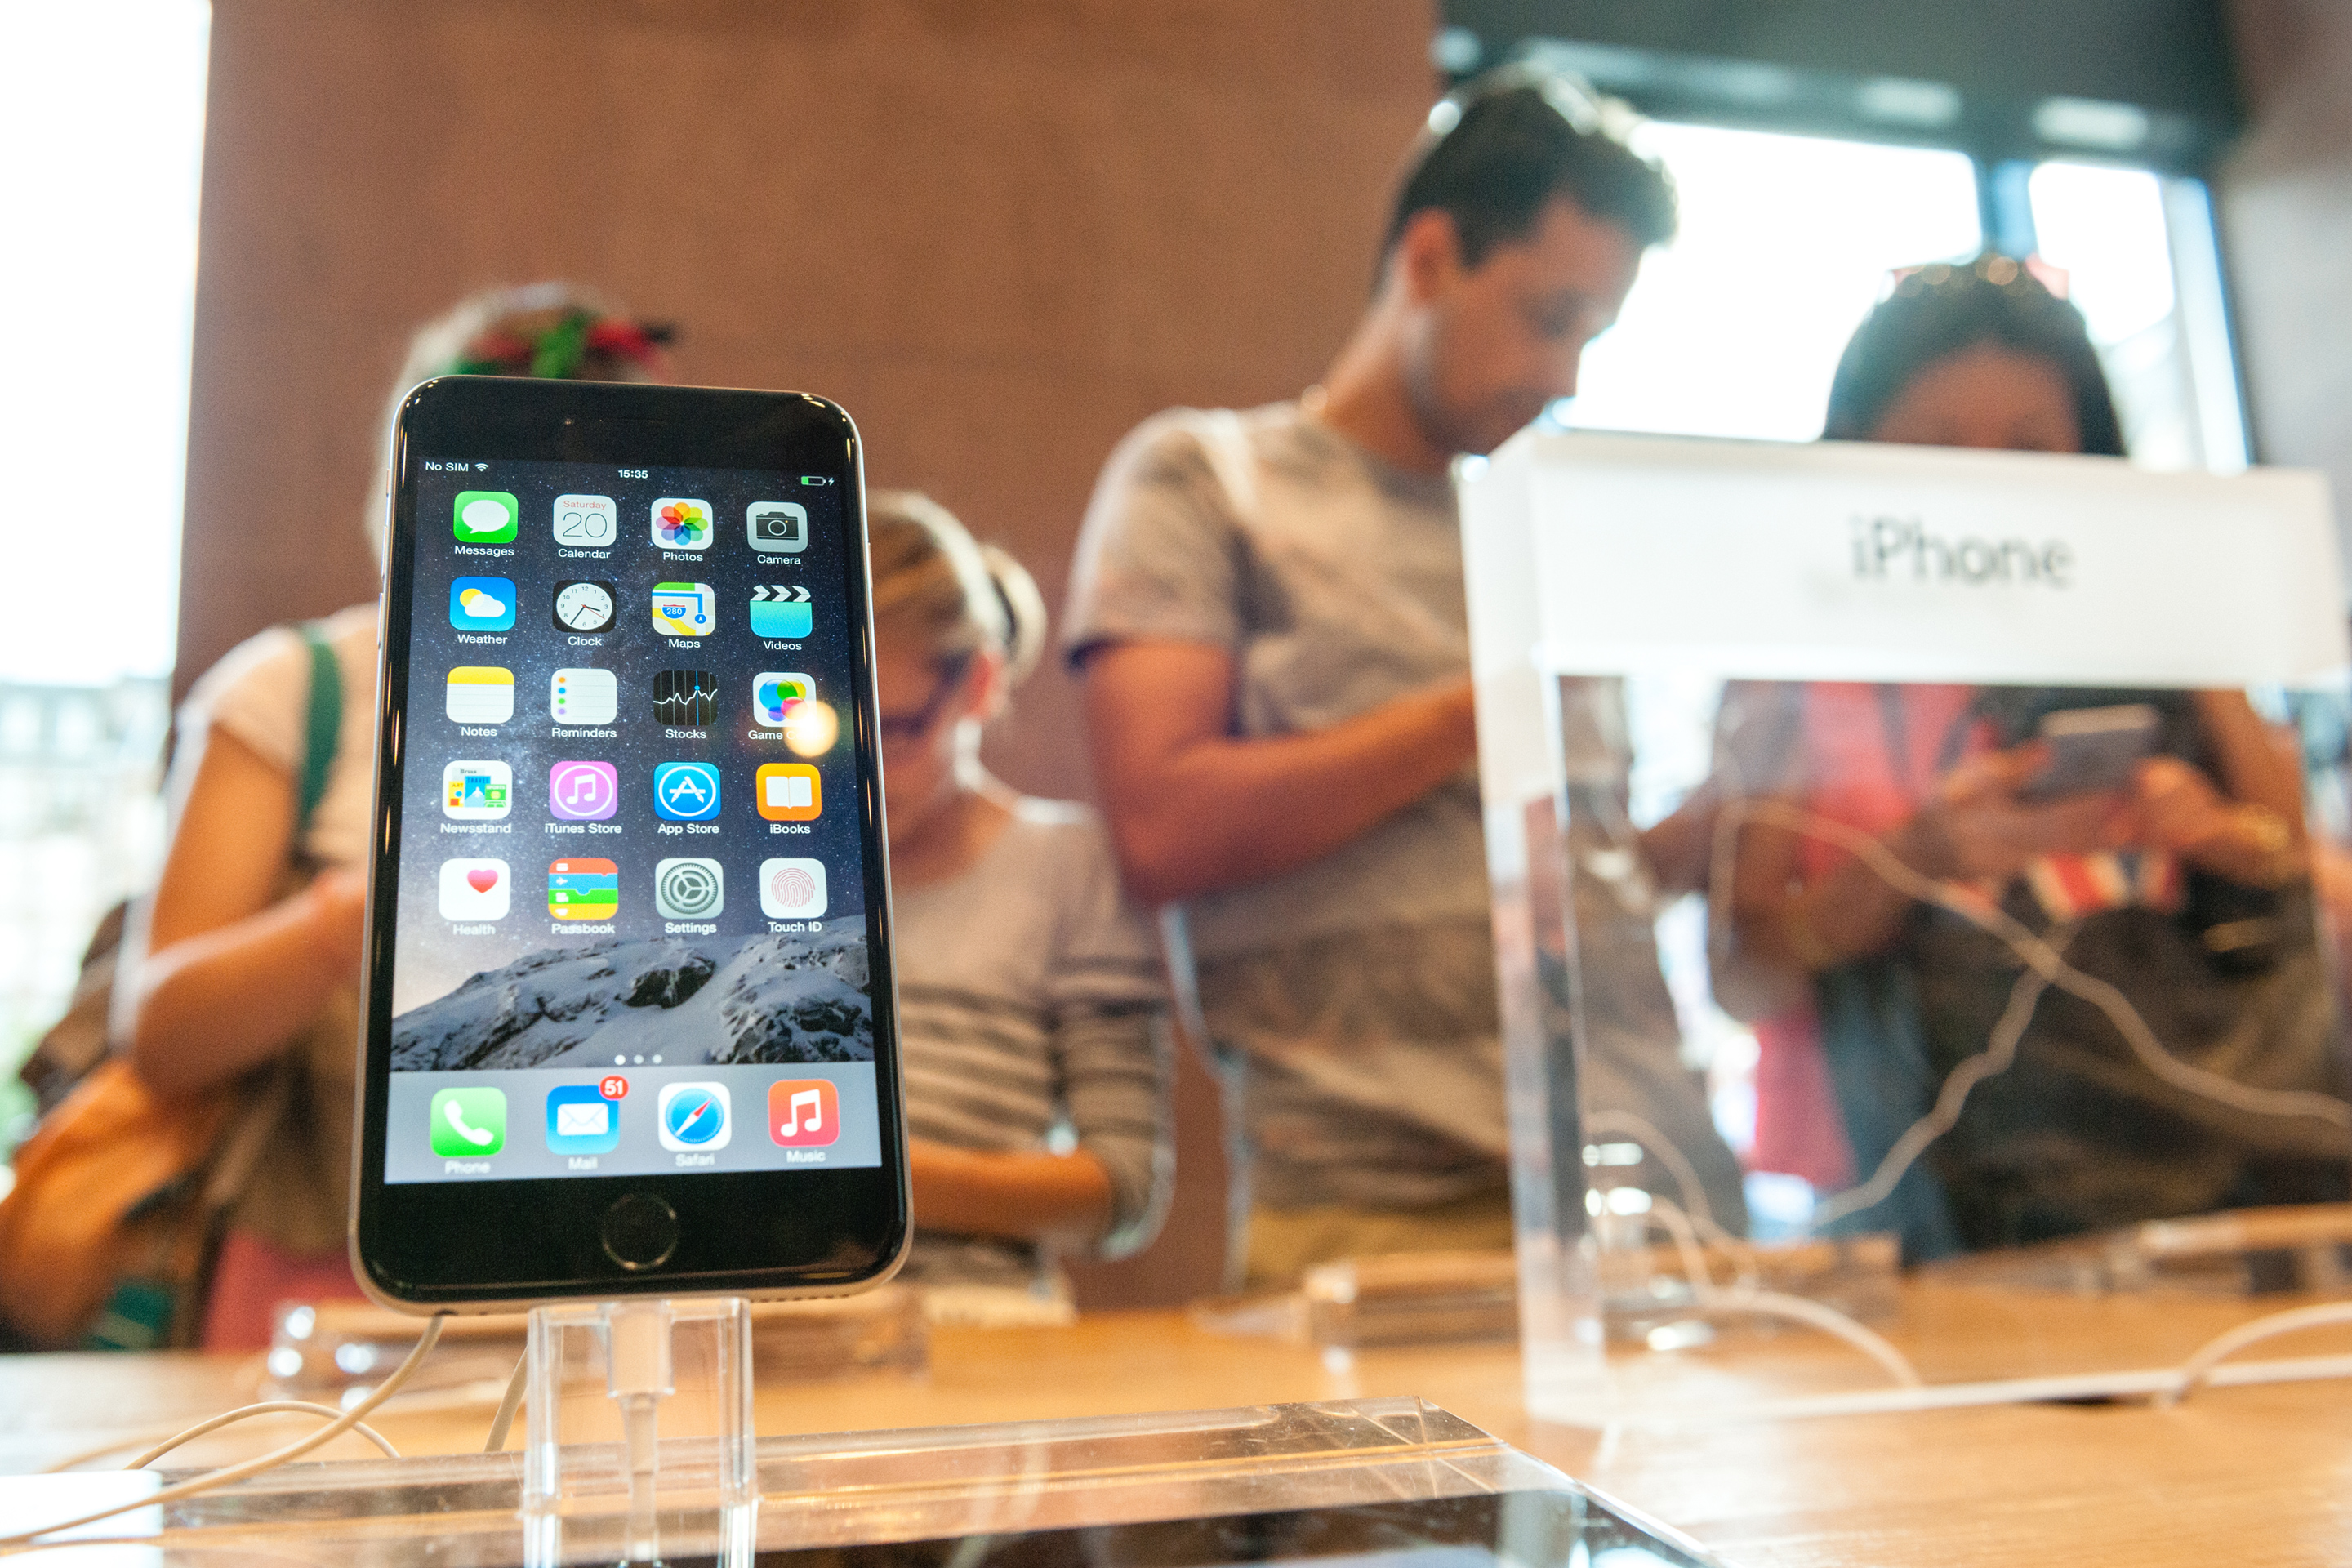 You Can Save a Ton of Money Buying a Refurbished iPhone. But Finding the Best Deal Can Be Tricky